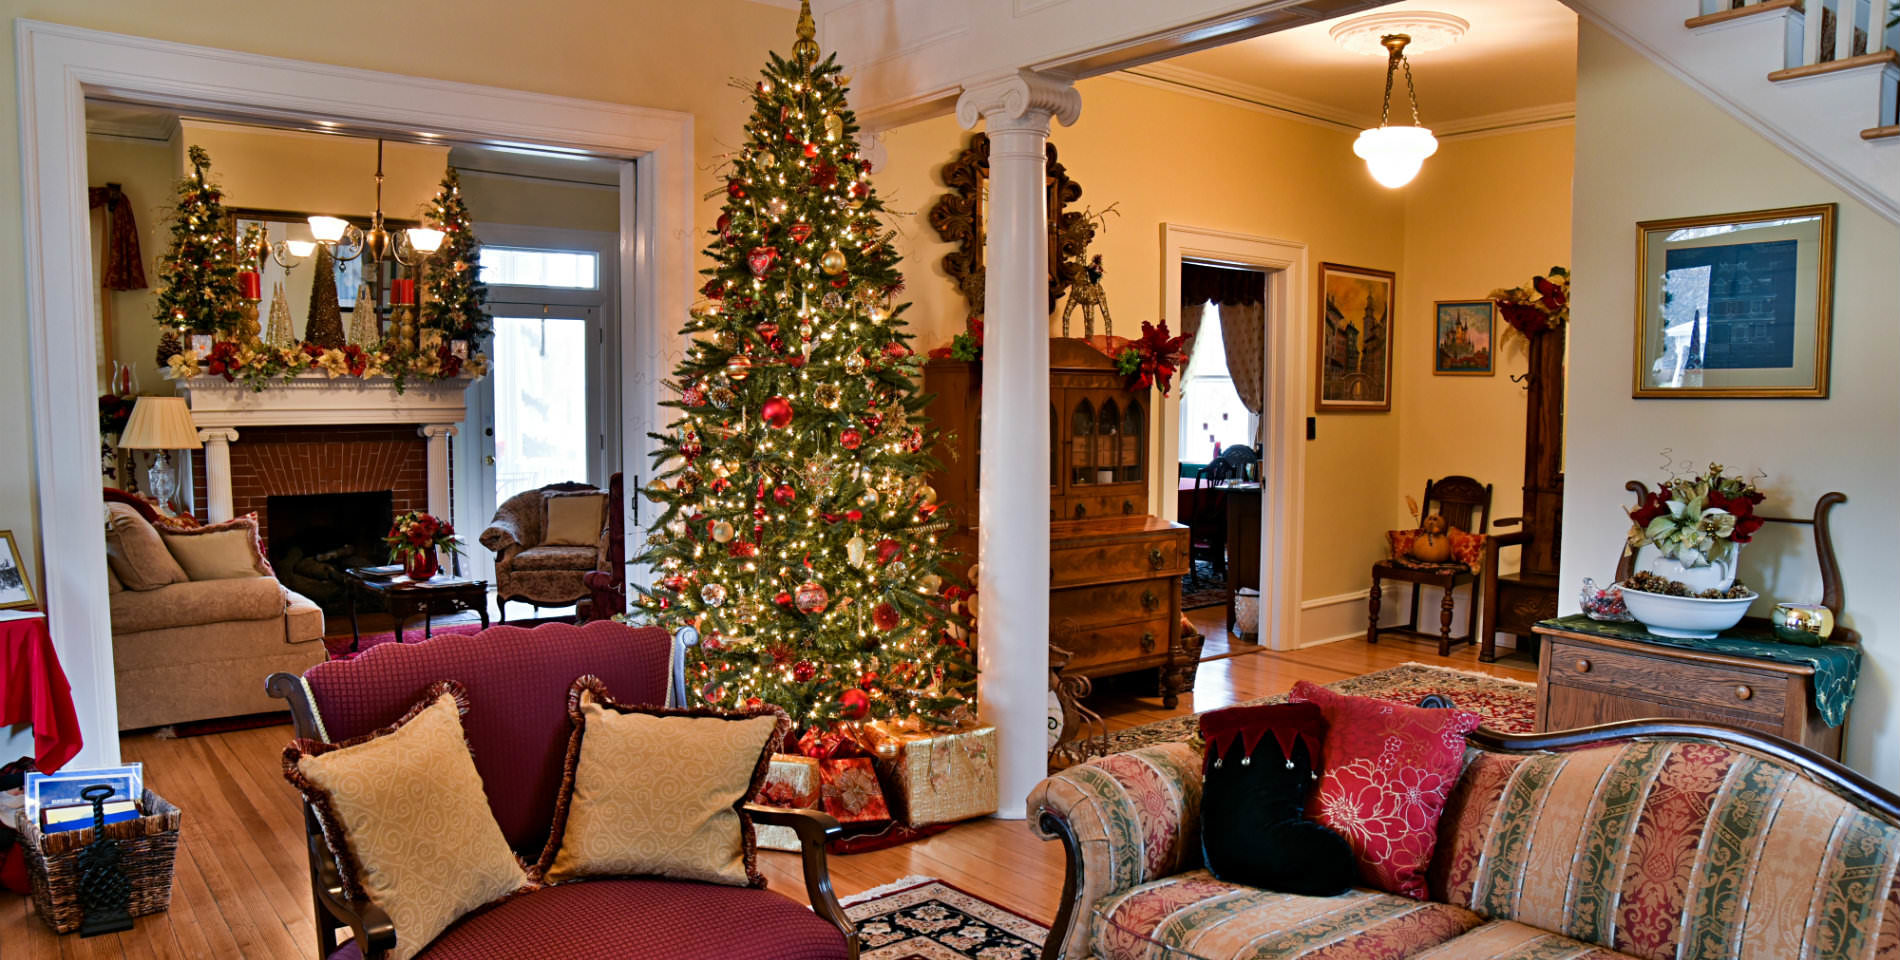 A couch and a chair with throw pillows sit before a green Christmas trees decorated with red and gold bulbs.